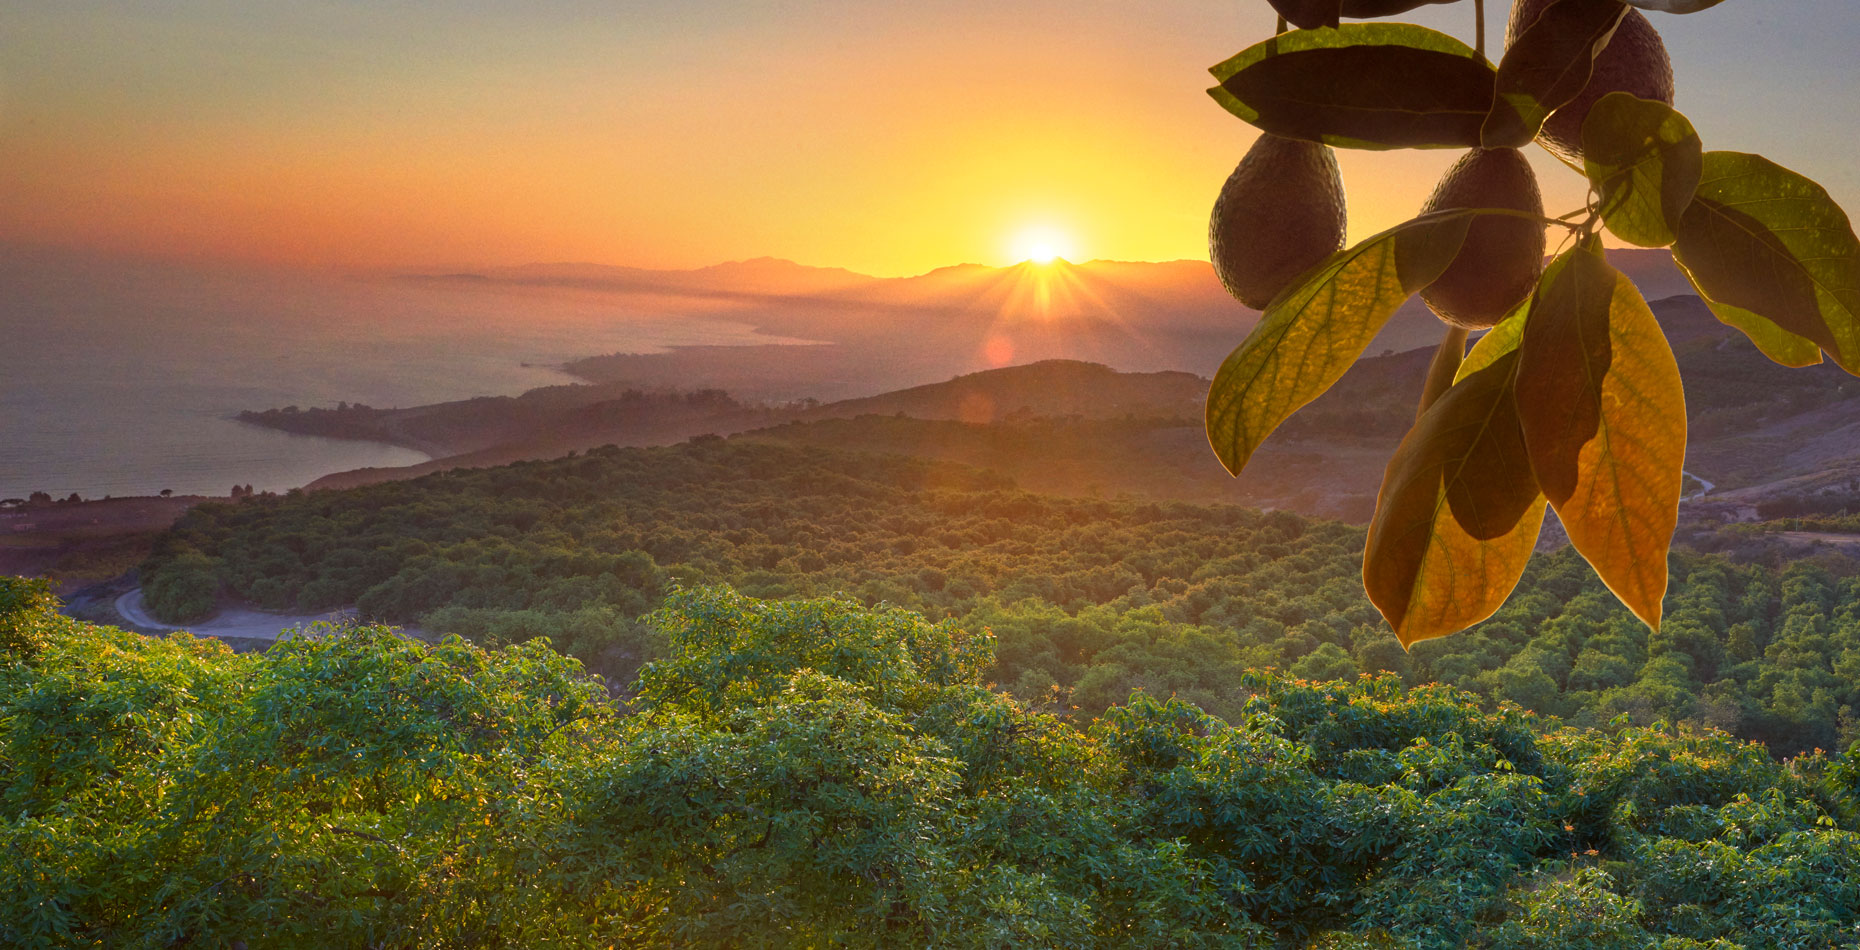 Avocado-orchard-at-sunset-on-the-central-California-coast-with-avocados-hanging-on-branch-in-foreground-pacific-coast-ocean in-background-by-Los-Angeles-farm-photographer-Joe-Atlas..